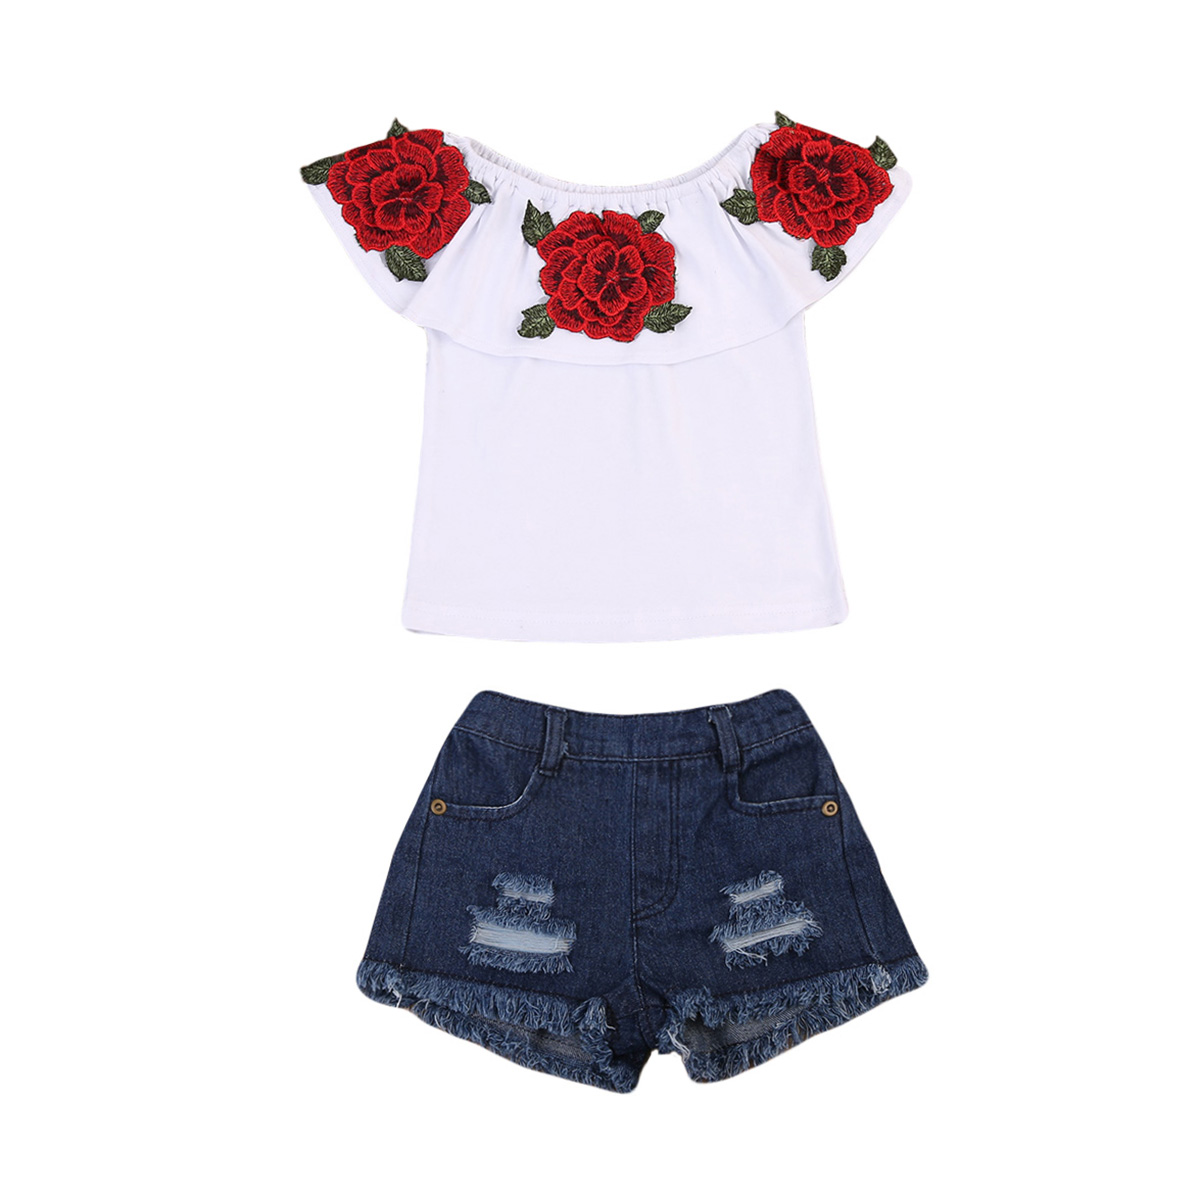 0-3Years,SO-buts Toddler Kid Baby Boy Summer Lovely Short Sleeve Glasses Pattern Shirt Tops+Denim Short Outfits Set